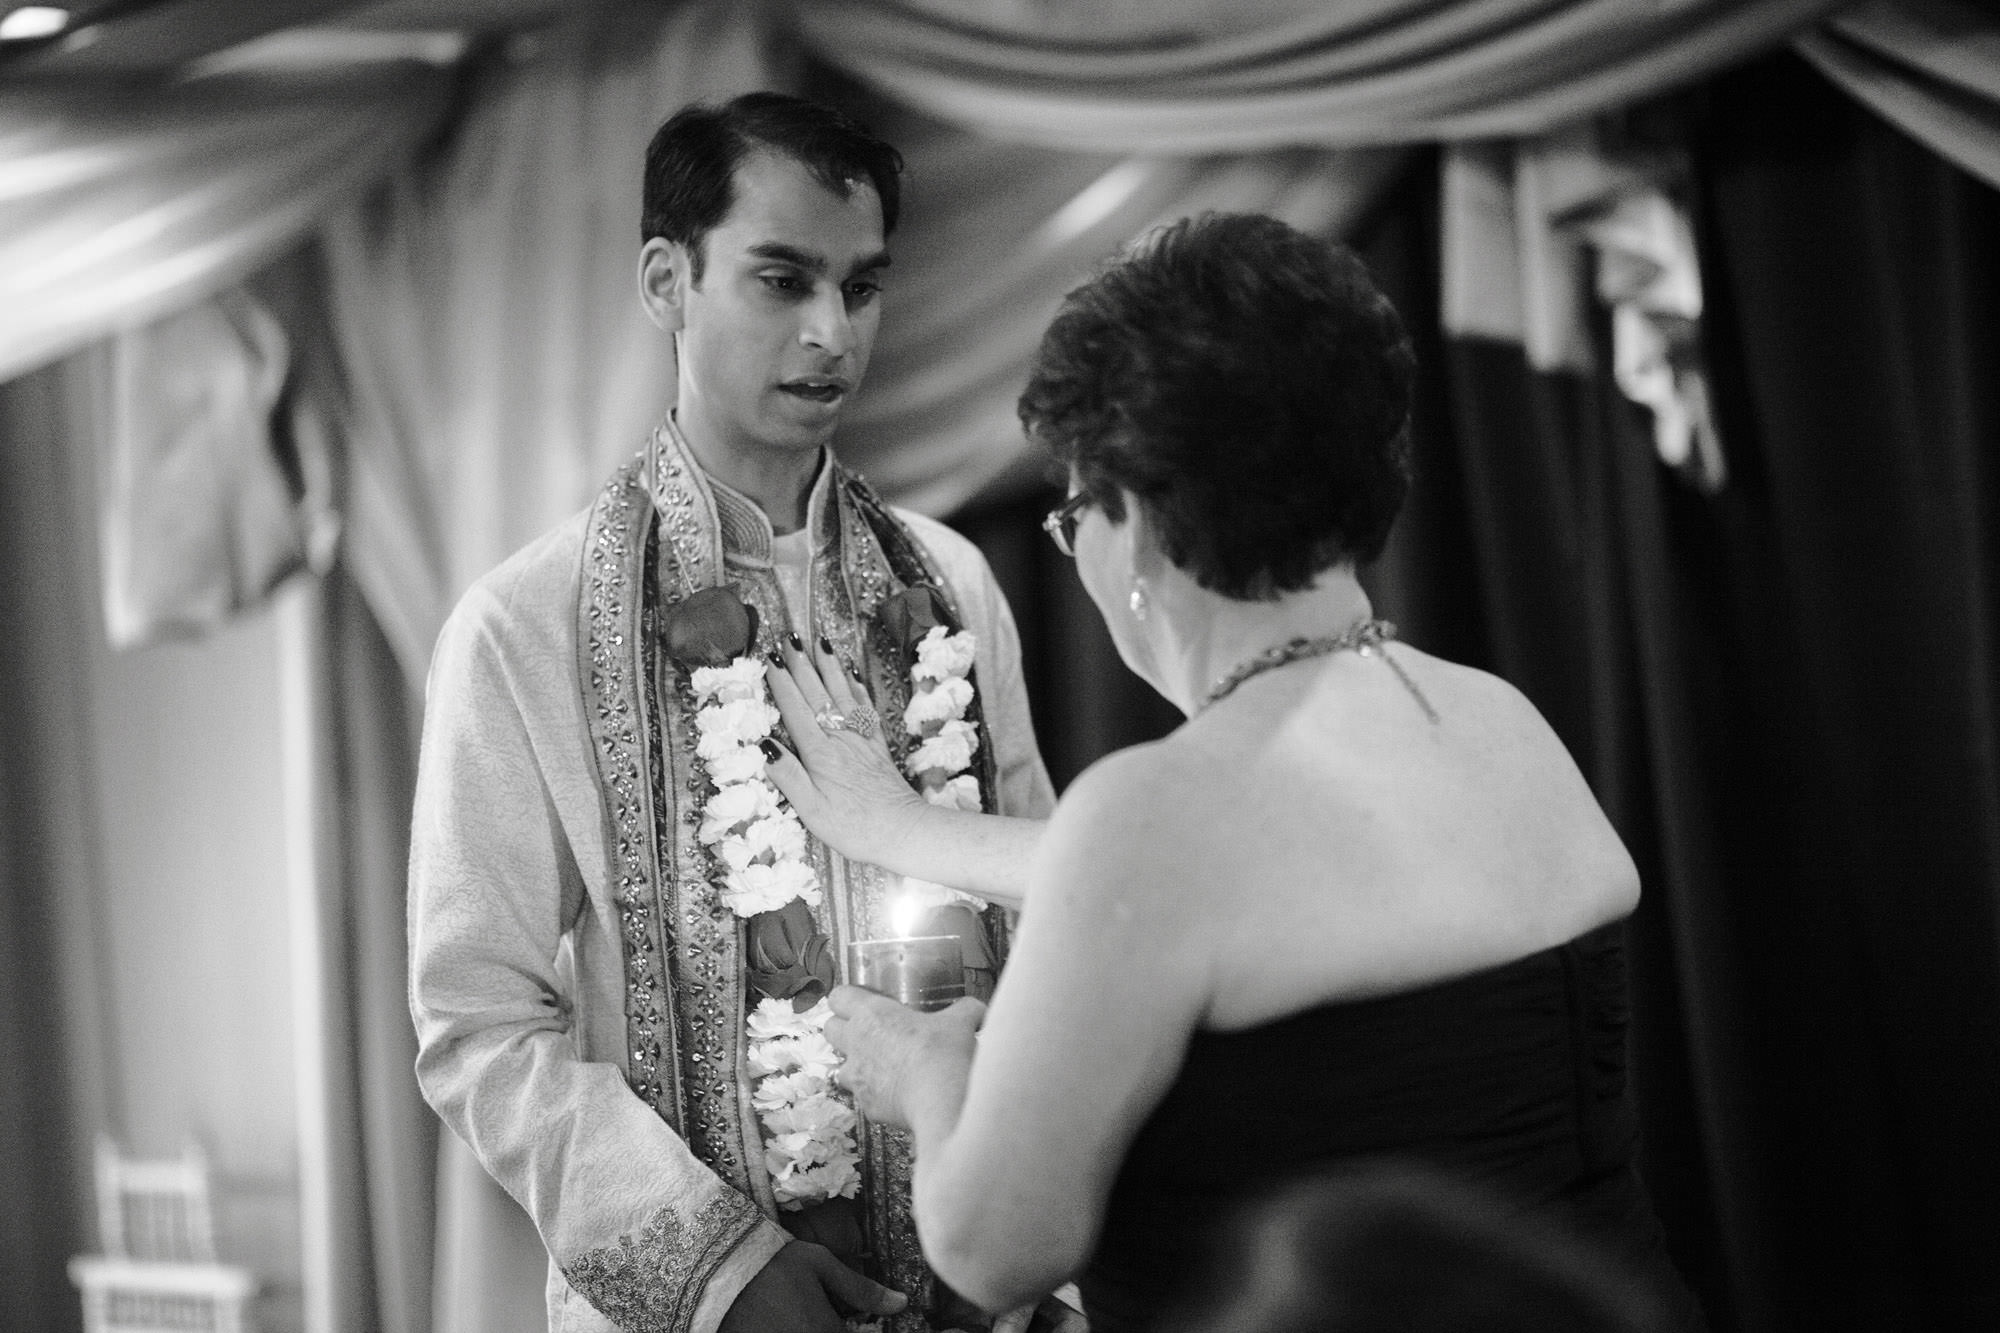 Four Seasons DC Wedding  I  The groom is blessed during the hindu ceremony in Washington, DC.